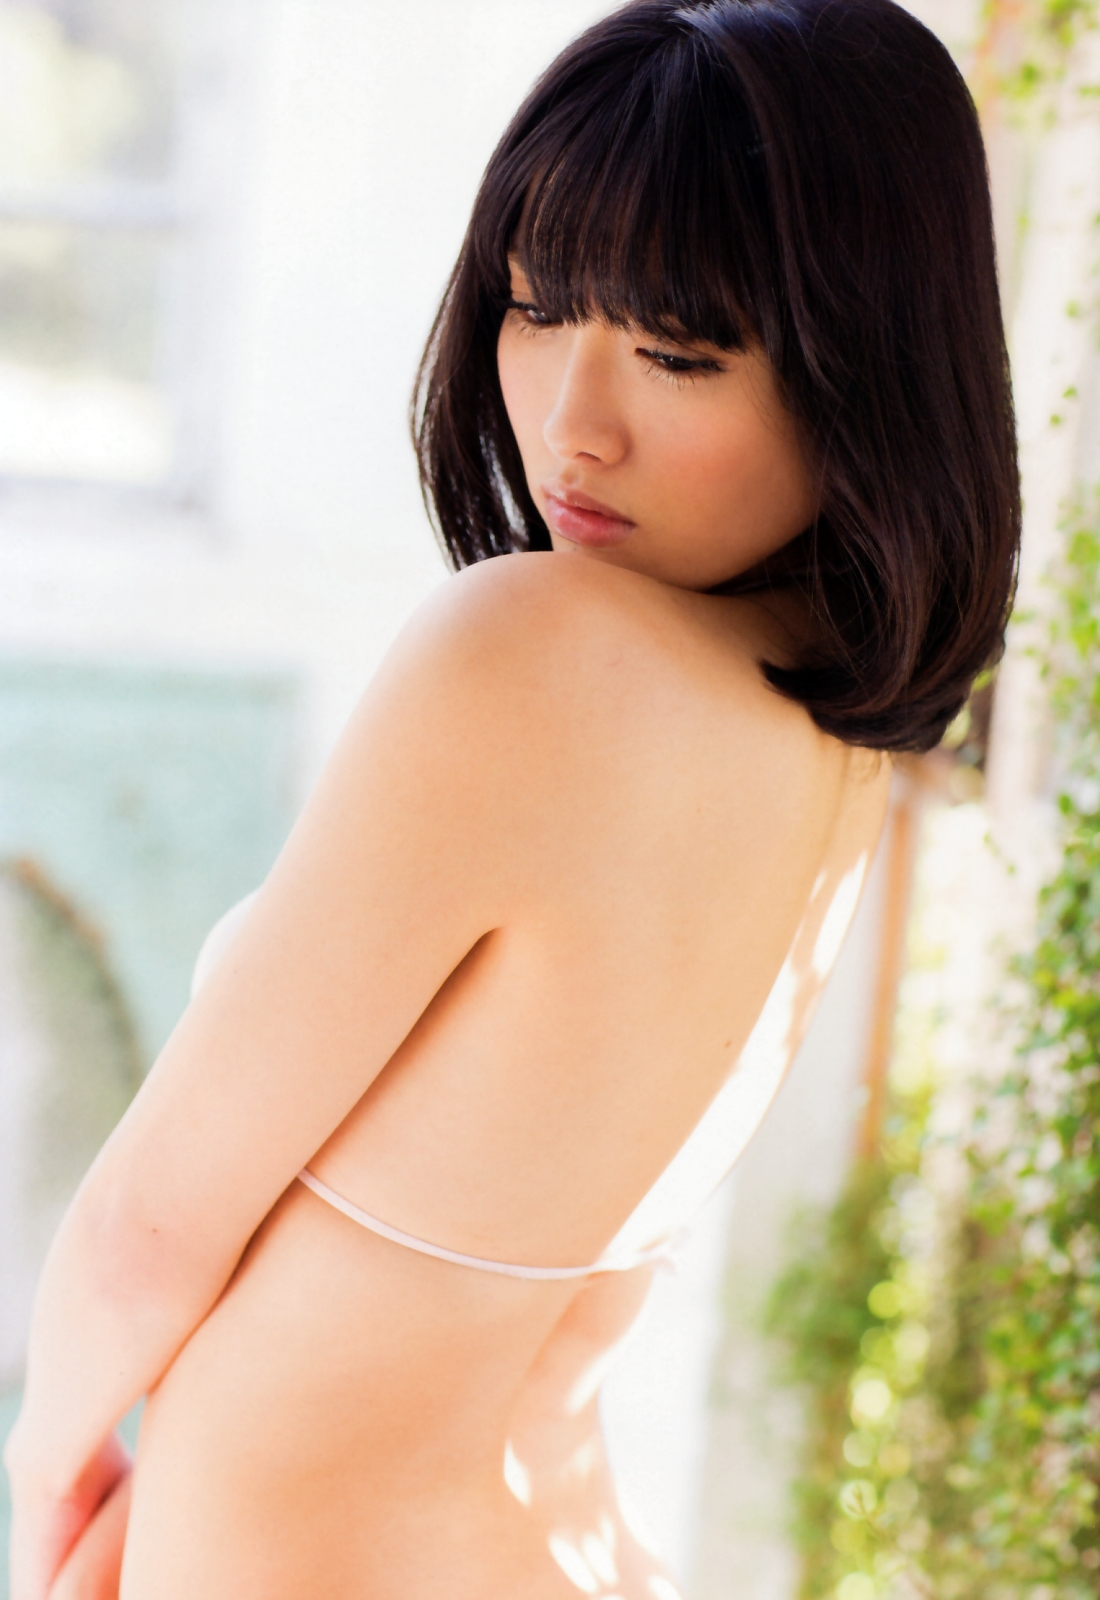 Its soft and makes you want to touch it Anna Konno 028